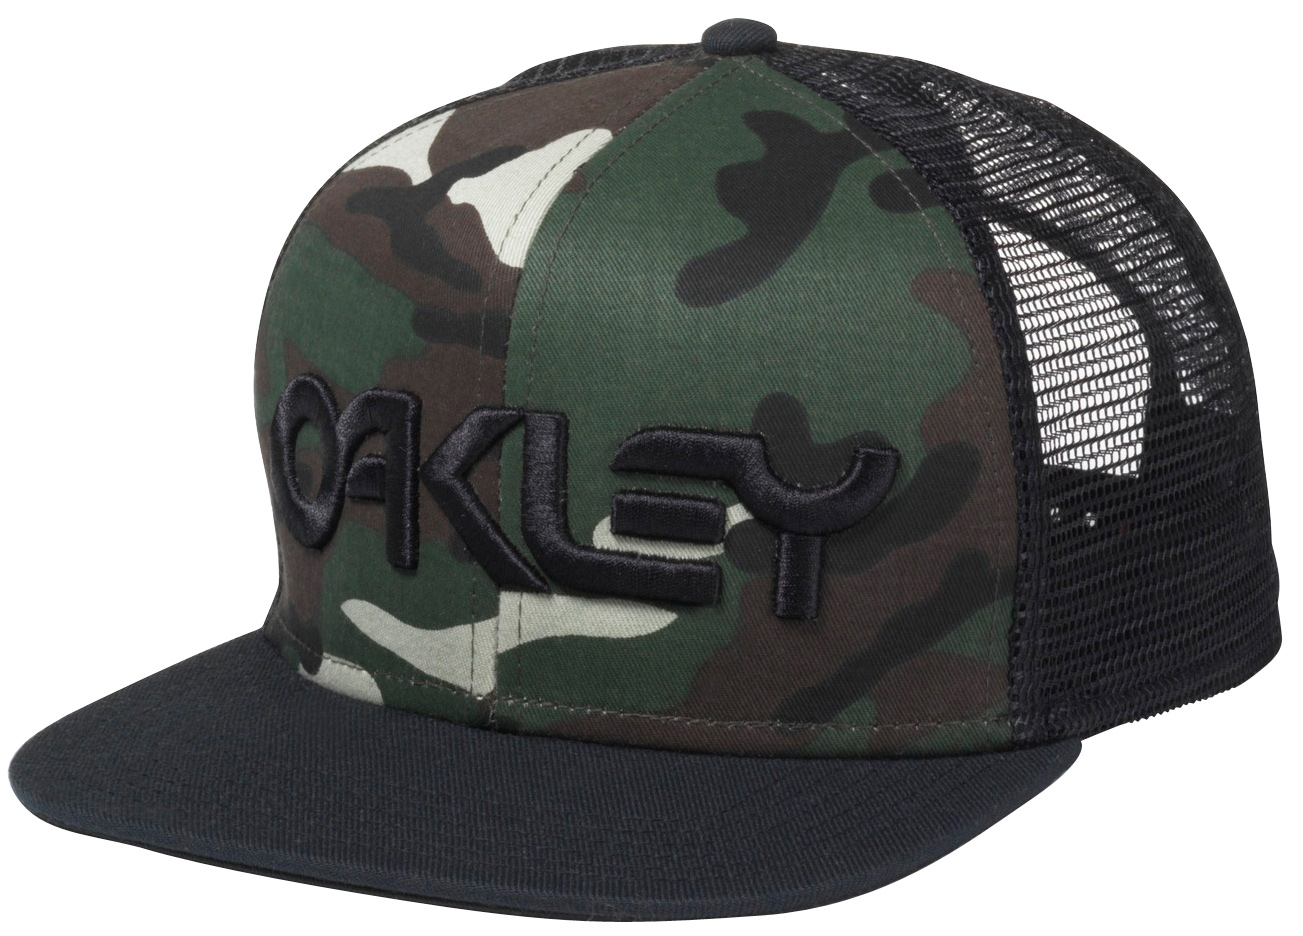 Oakley Classic fit adjustable snap back cap with structured polyester mesh back, subtly contoured brim and 3D logo embroidery on crown - $25.00